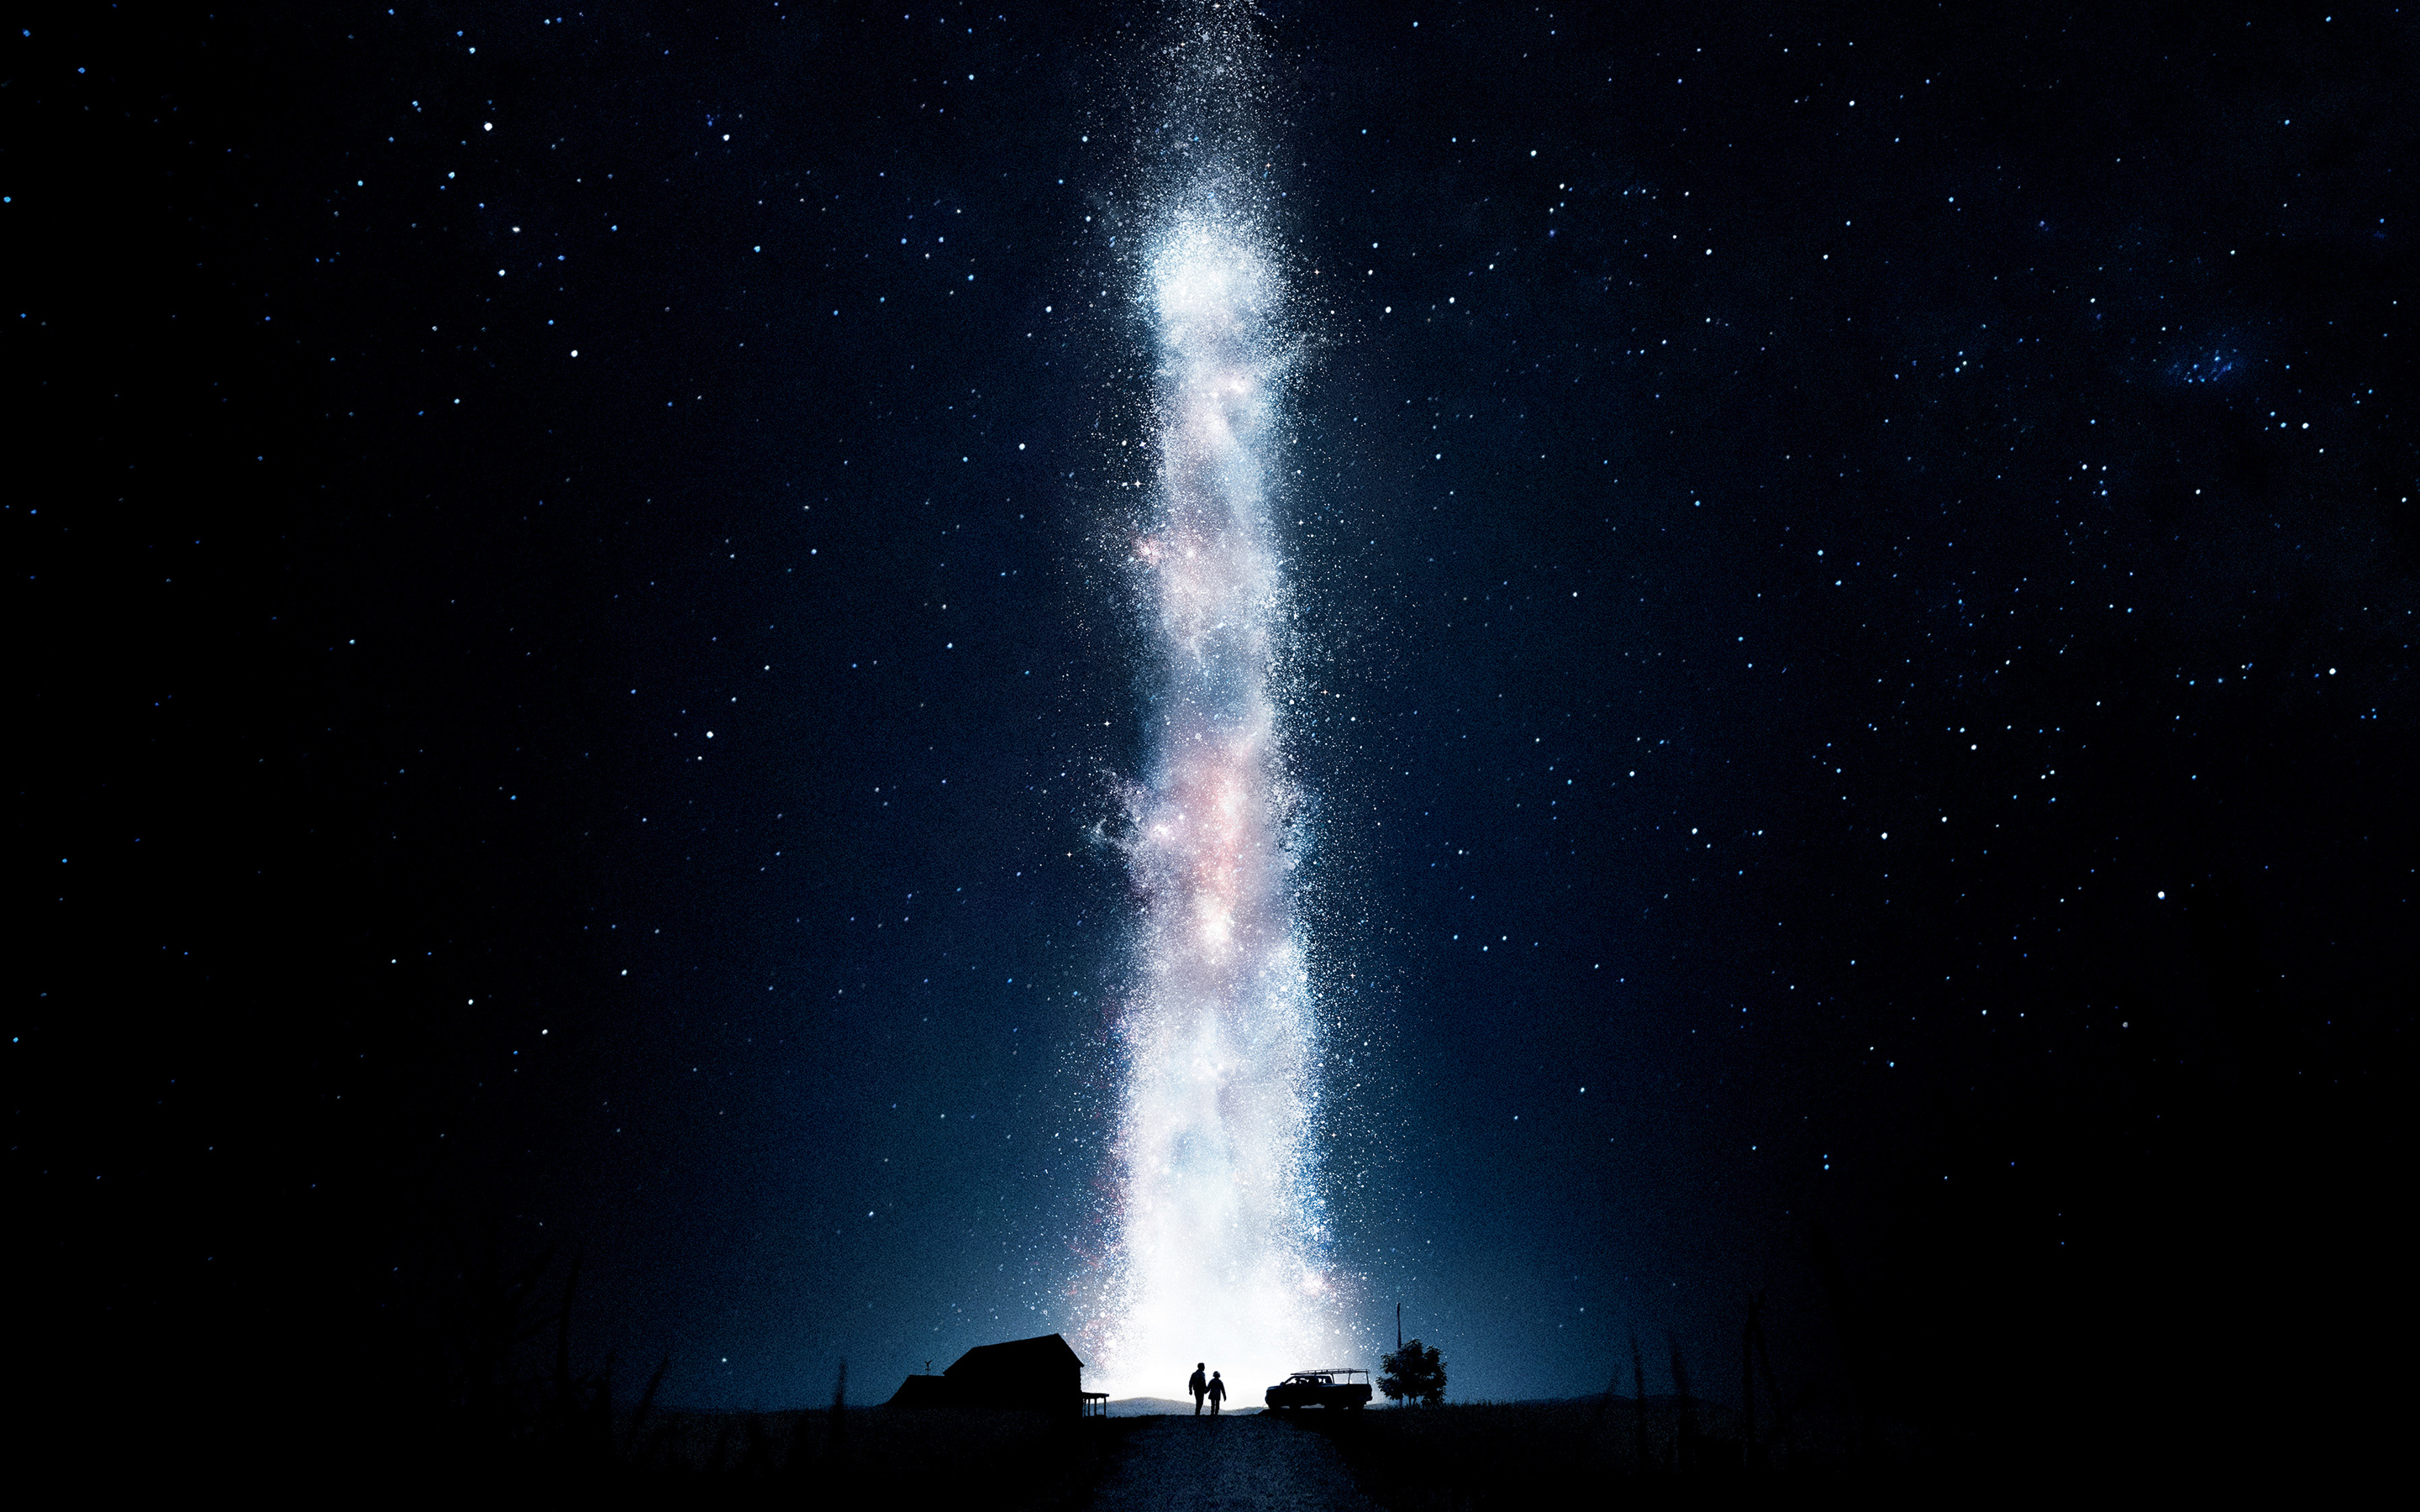 Interstellar 2014 Movie Wallpapers HD Wallpapers 2880x1800